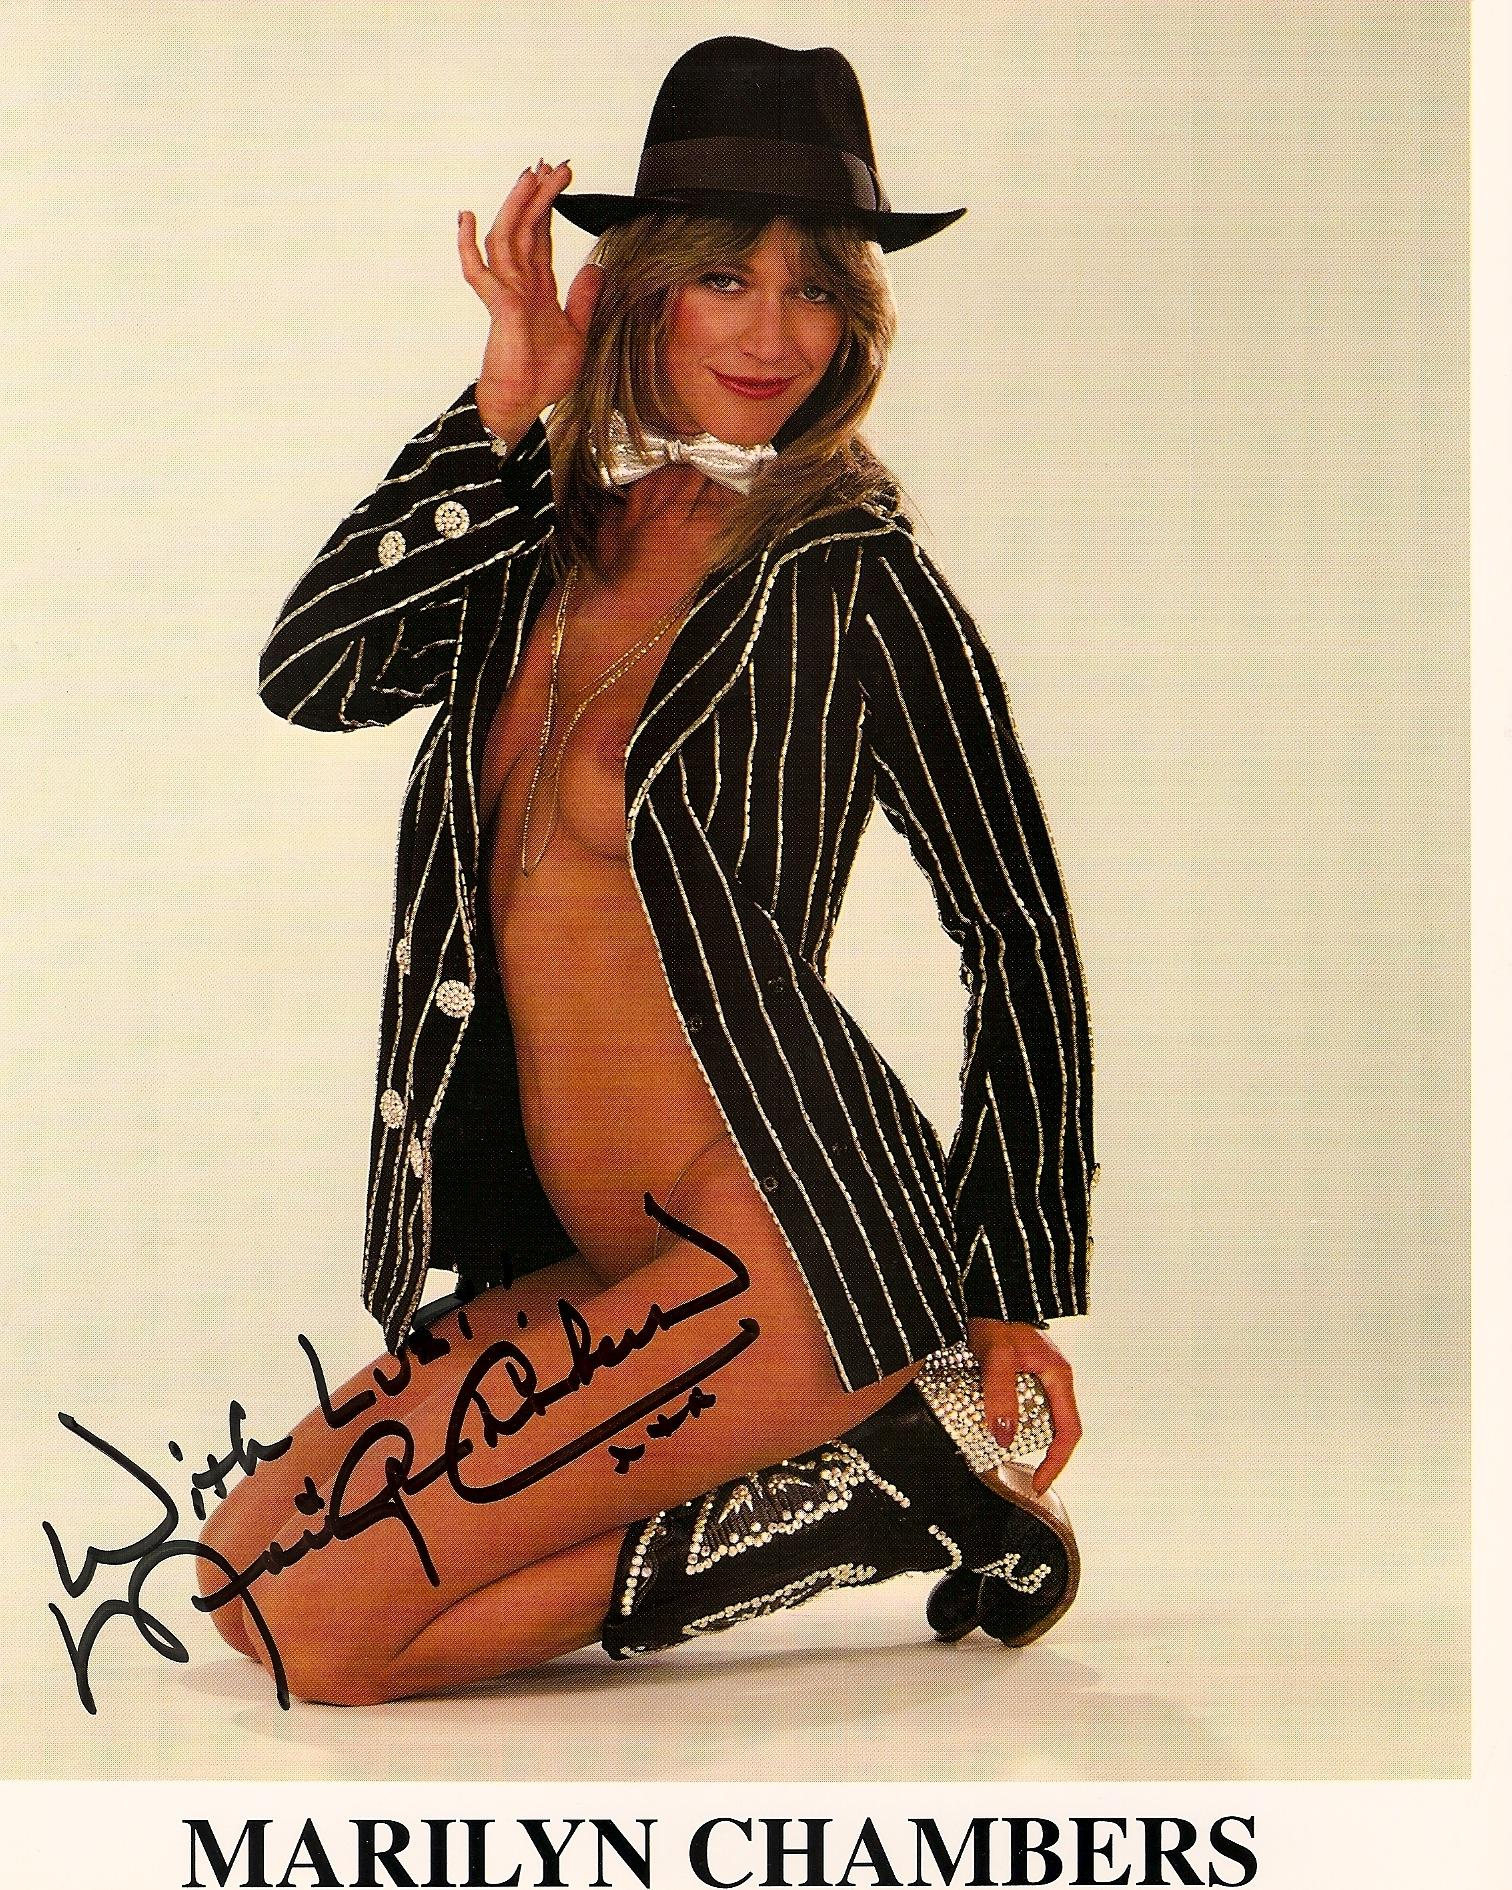 Marilyn chambers photos Marilyn Chambers Signed Photo